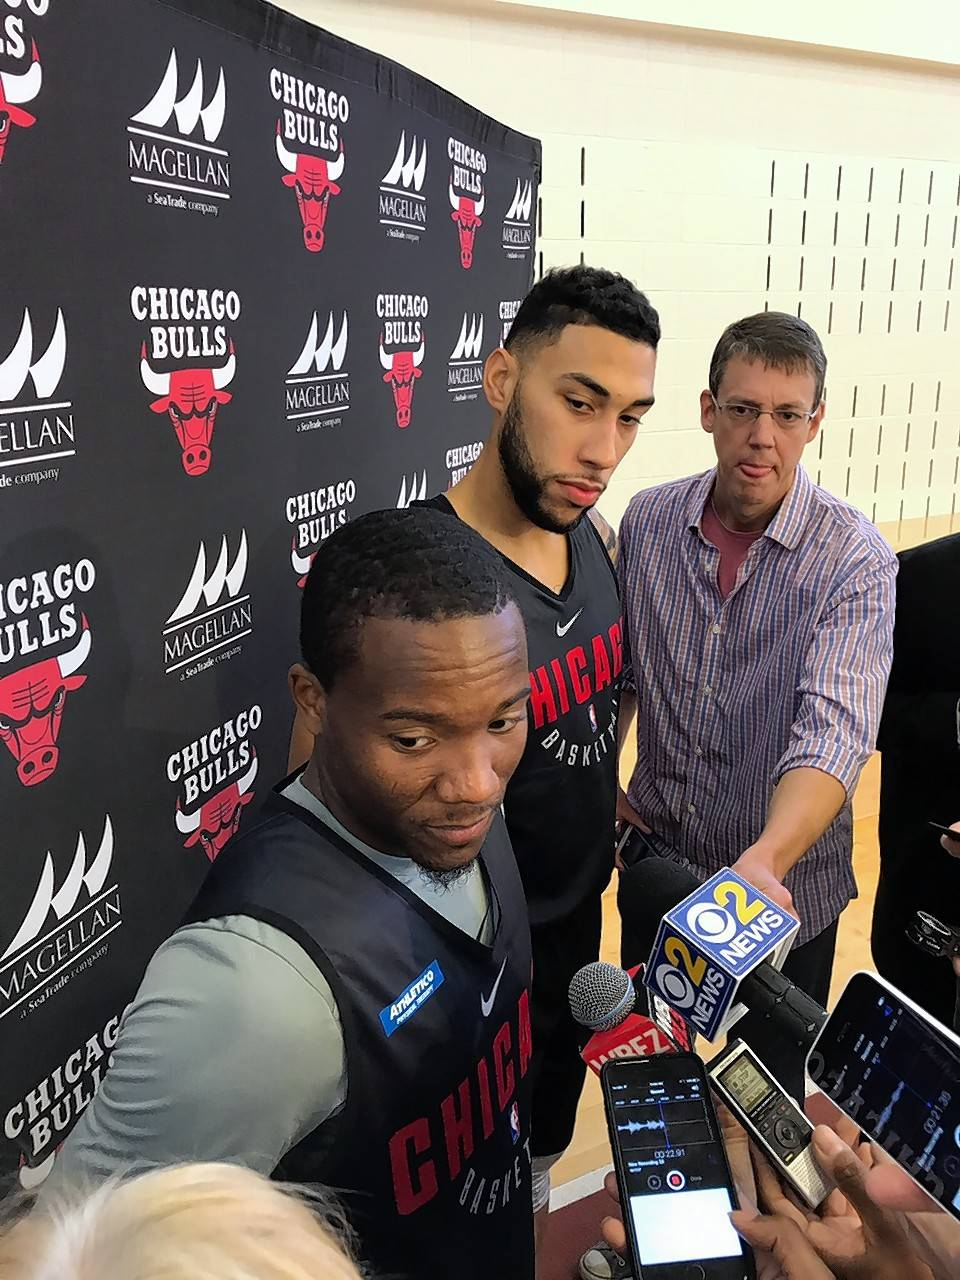 Point guard Kay Felder, left, played at Oakland University in Michigan when Denzel Valentine, center, was a star at Michigan State. The Chicago Bulls signed Felder, a 5-foot-9 point guard, as a free agent.